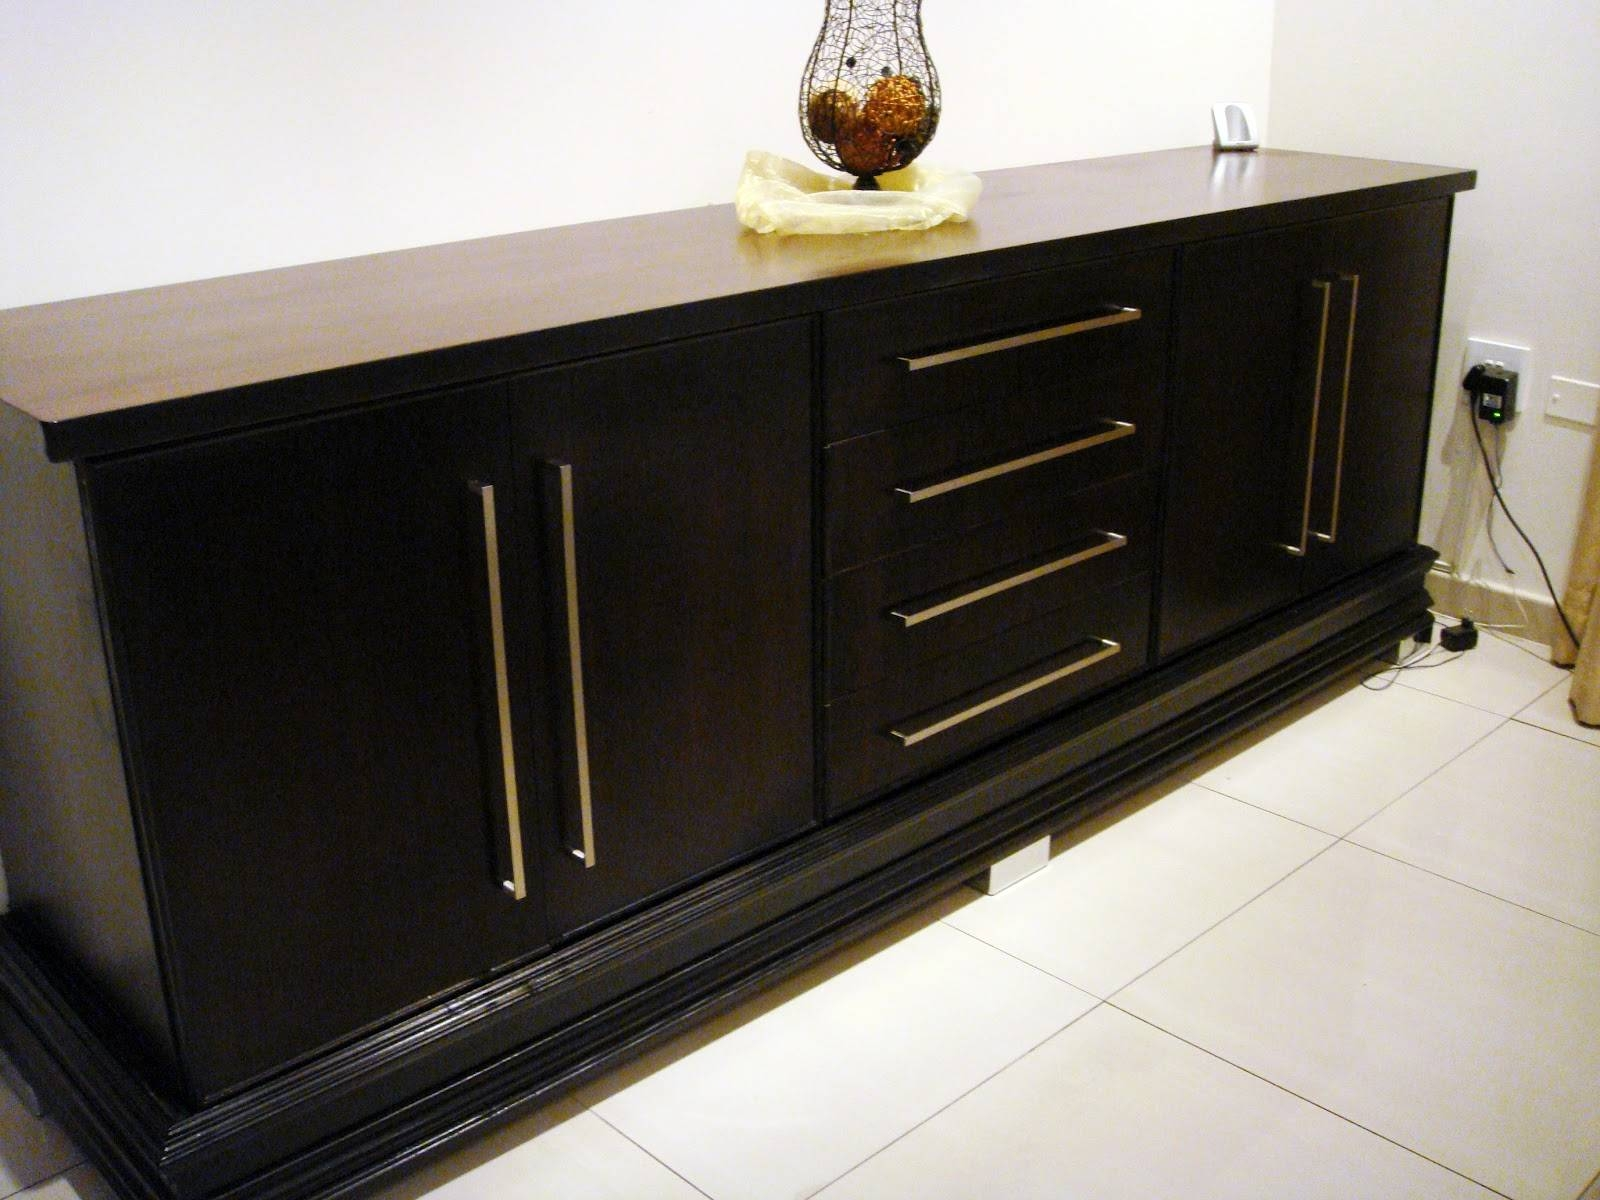 Dining Room Bar Sideboard | Latest Home Decor And Design throughout Dining Room With Sideboards (Image 3 of 15)